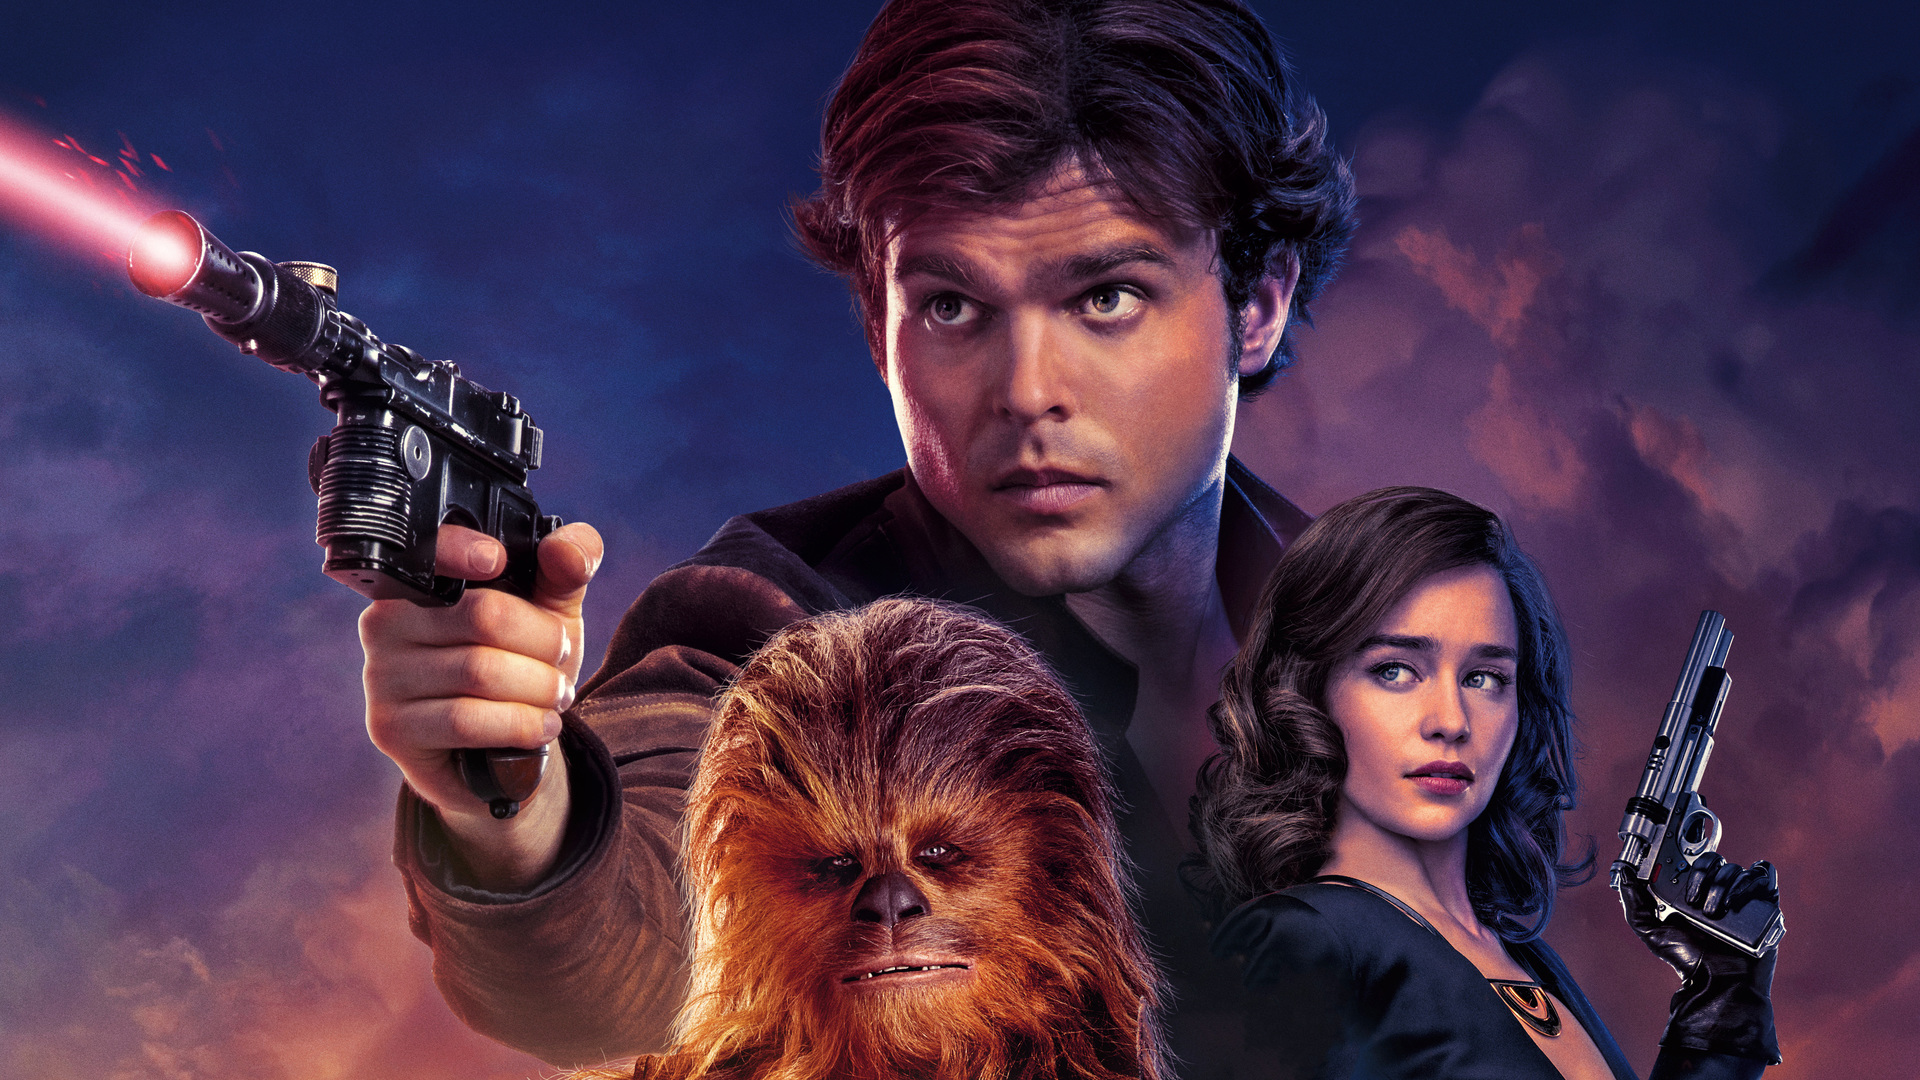 Solo A Star Wars Story 4k - Solo A Star Wars Story 4k - Wallpapers, 4k